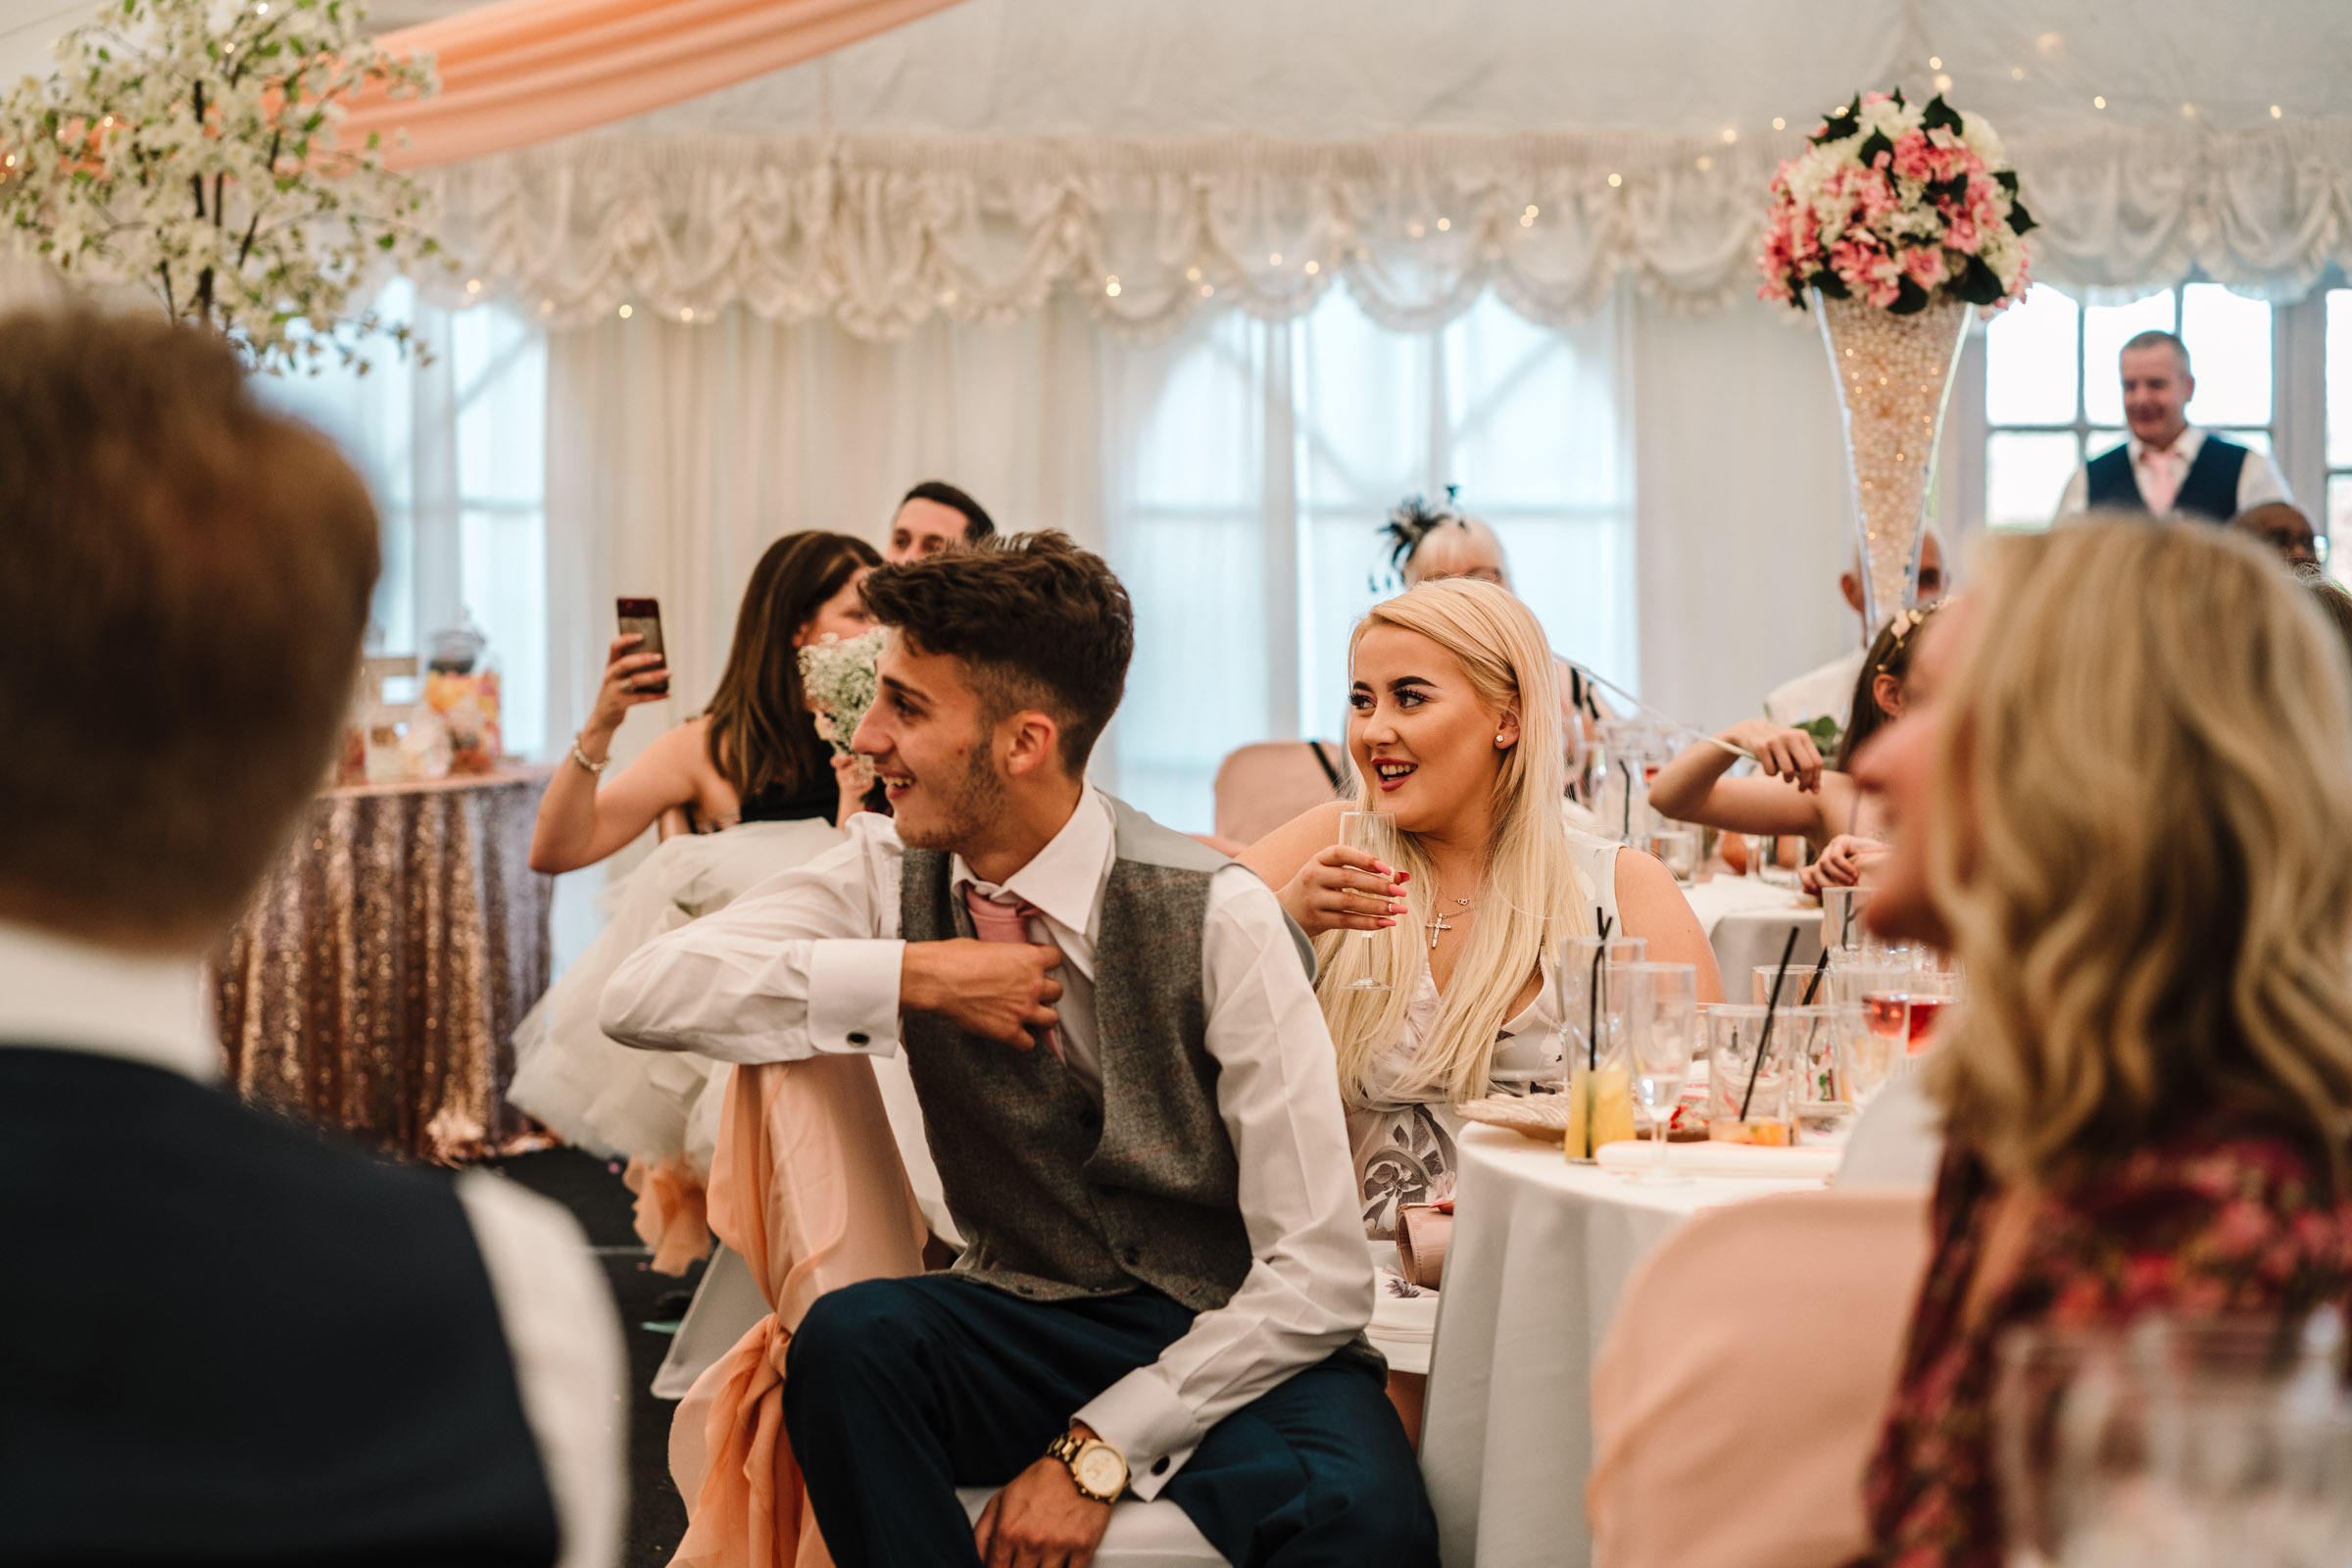 Guests laughing during speeches, royal arms hotel wedding